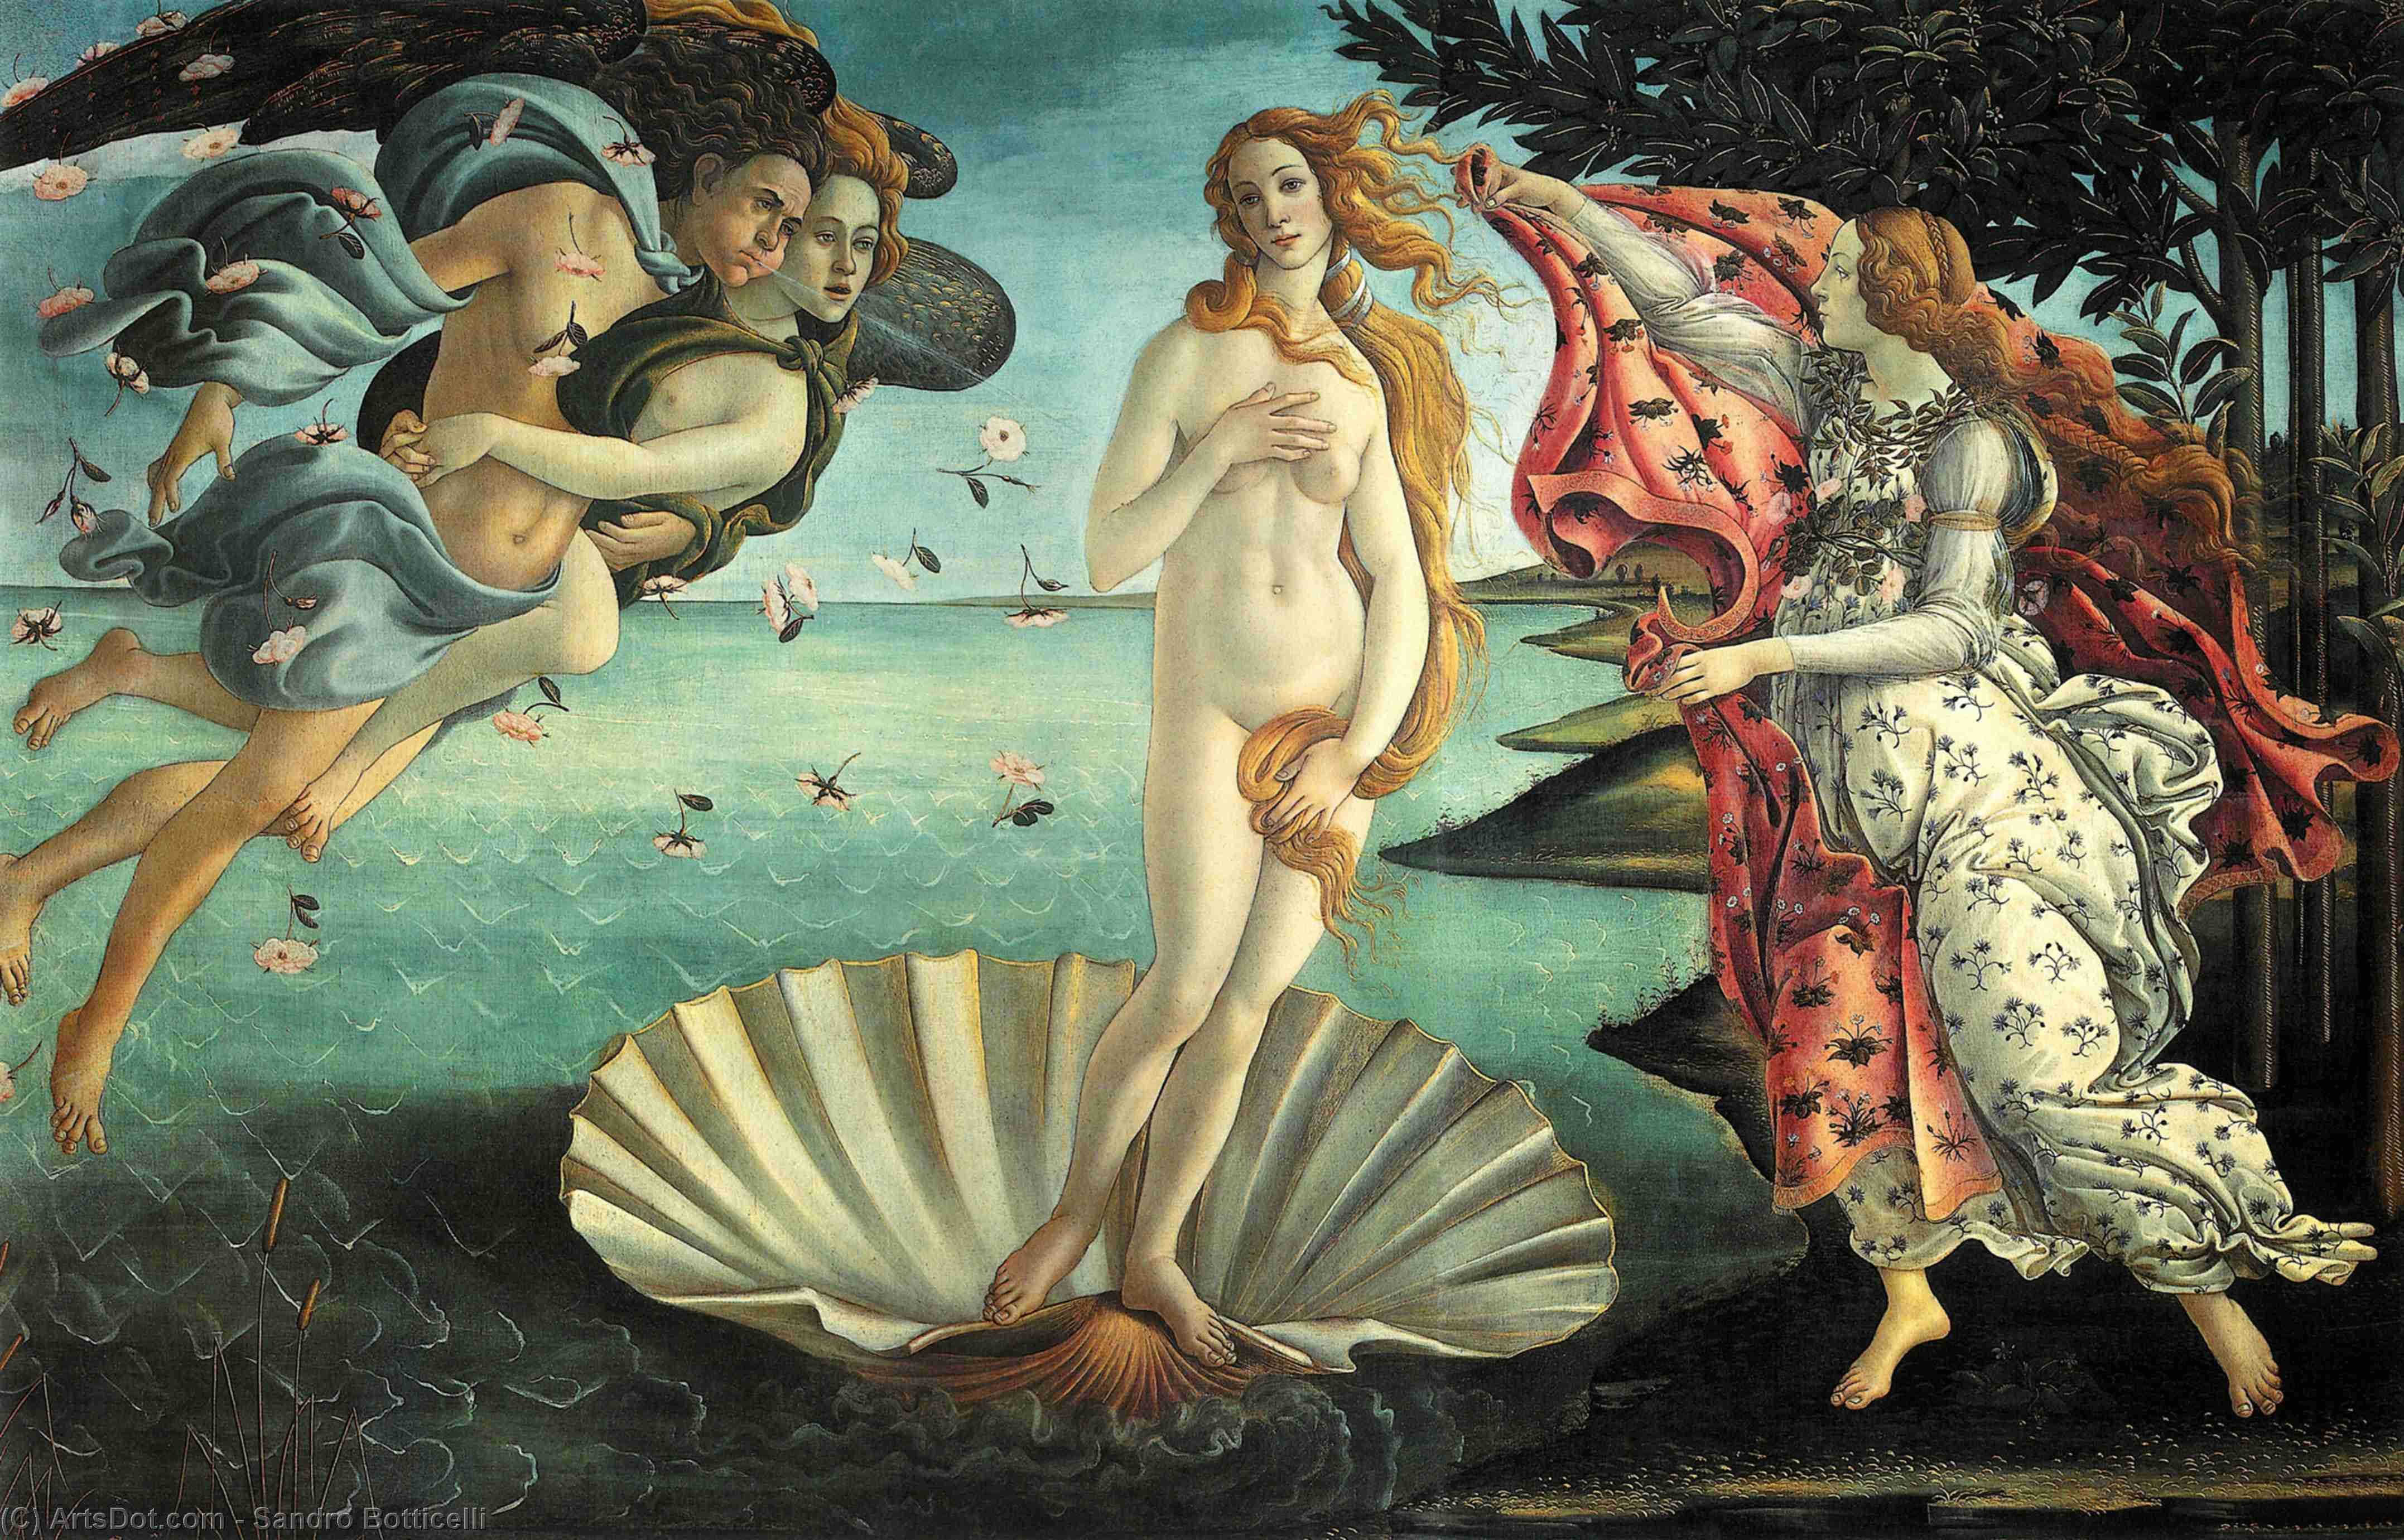 Wikioo.org - The Encyclopedia of Fine Arts - Painting, Artwork by Sandro Botticelli - The Birth of Venus